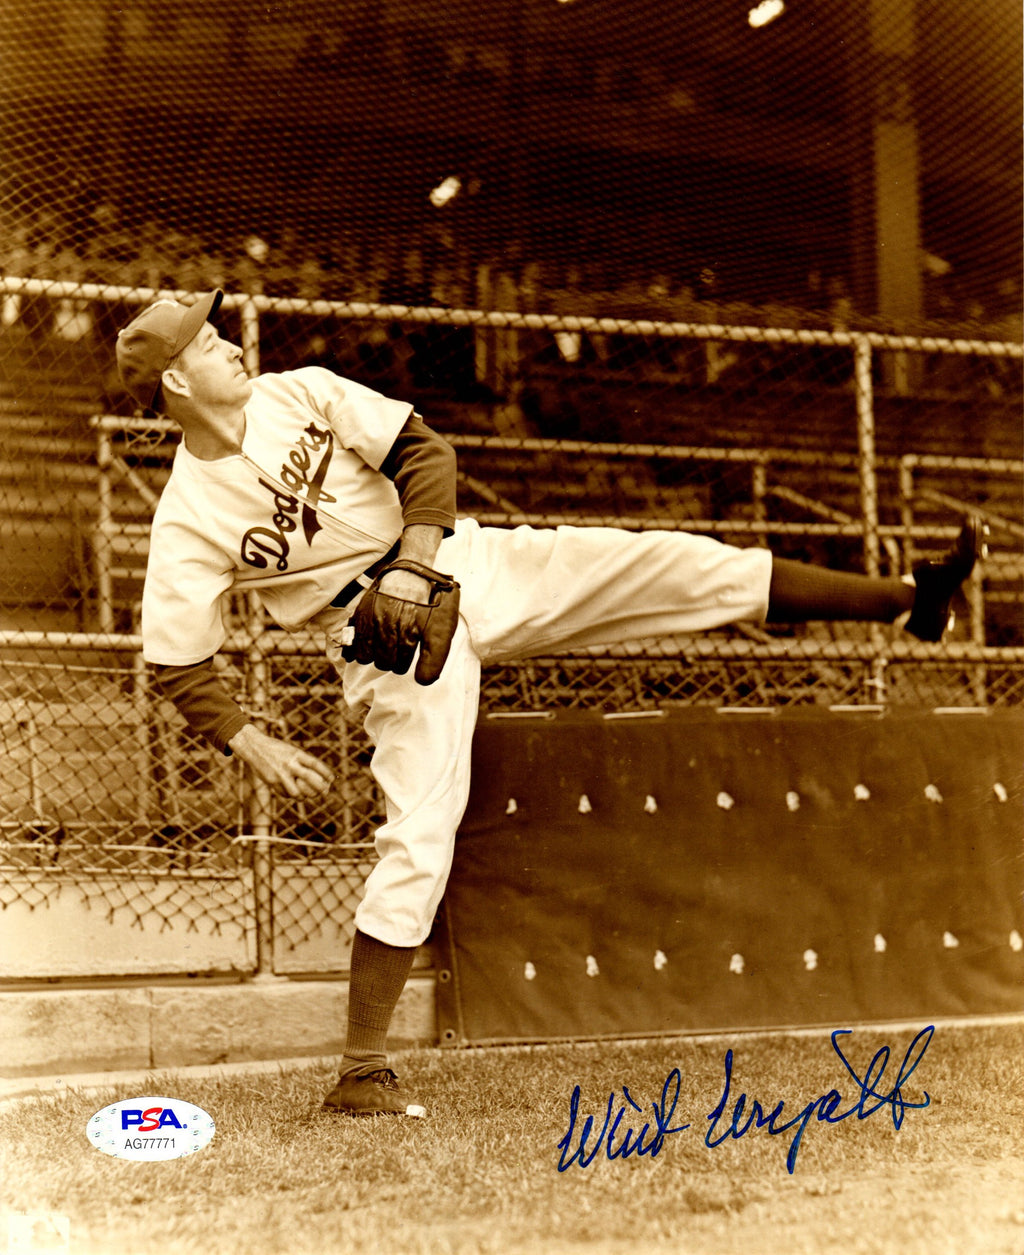 Whit Wyatt autographed signed 8x10 photo MLB Brooklyn Dodgers PSA COA - JAG Sports Marketing